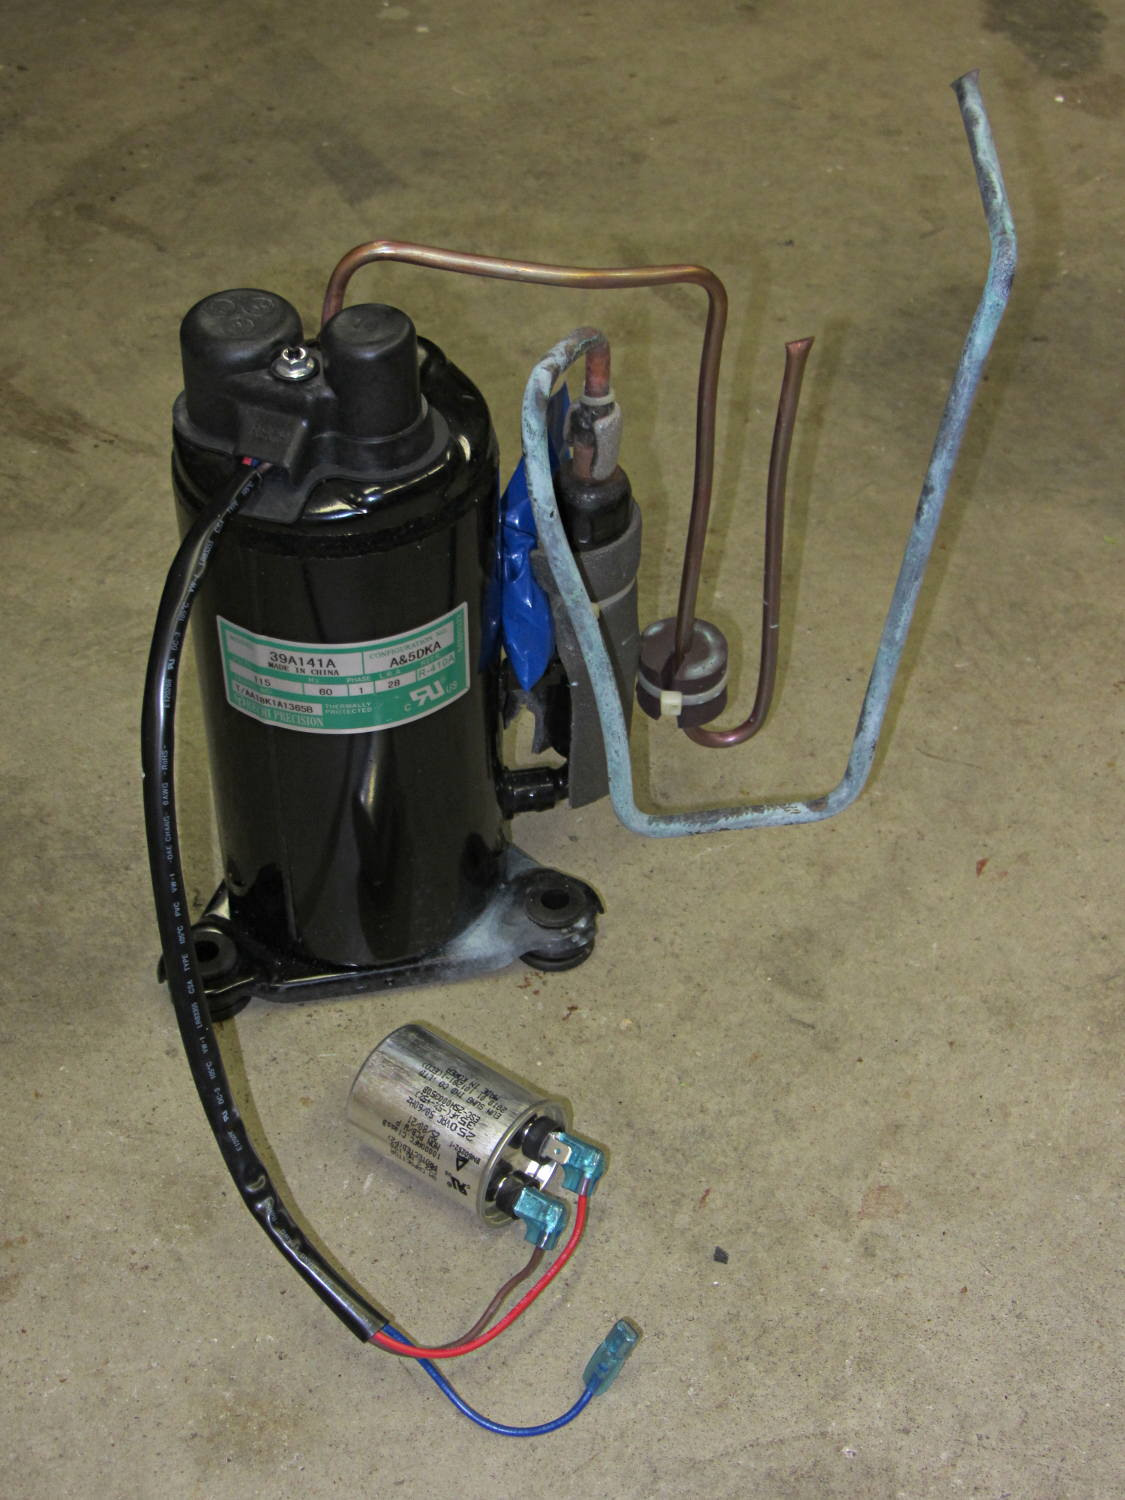 Dehumidifier Compressor Wiring Schematic Diagrams Dca Pool Dehumidifiers Diagram Machine Shop The Smell Of Molten Projects In Morning Page 122 Air Handler